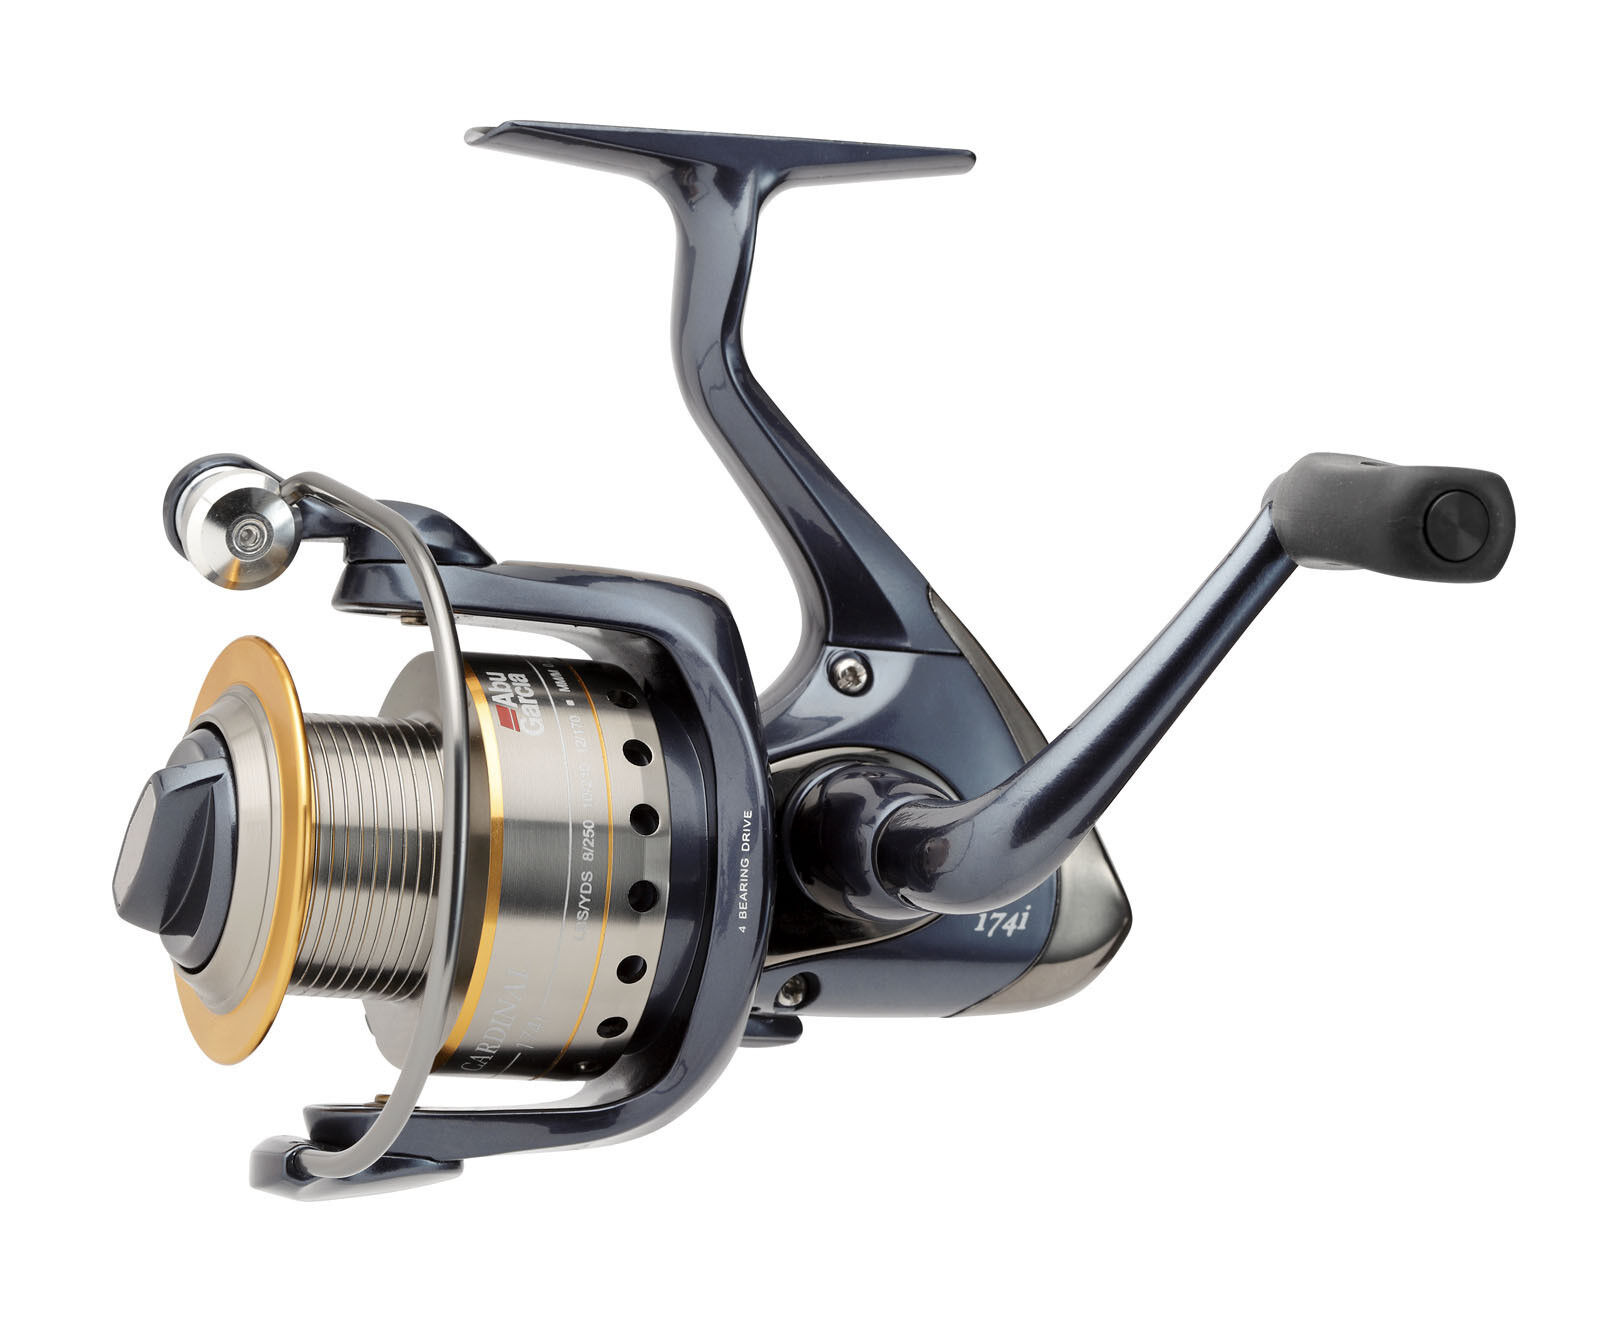 Abu Garcia 174   176   177 SWi FD Cardinal Sea Spinning Saltwater Fishing Reel